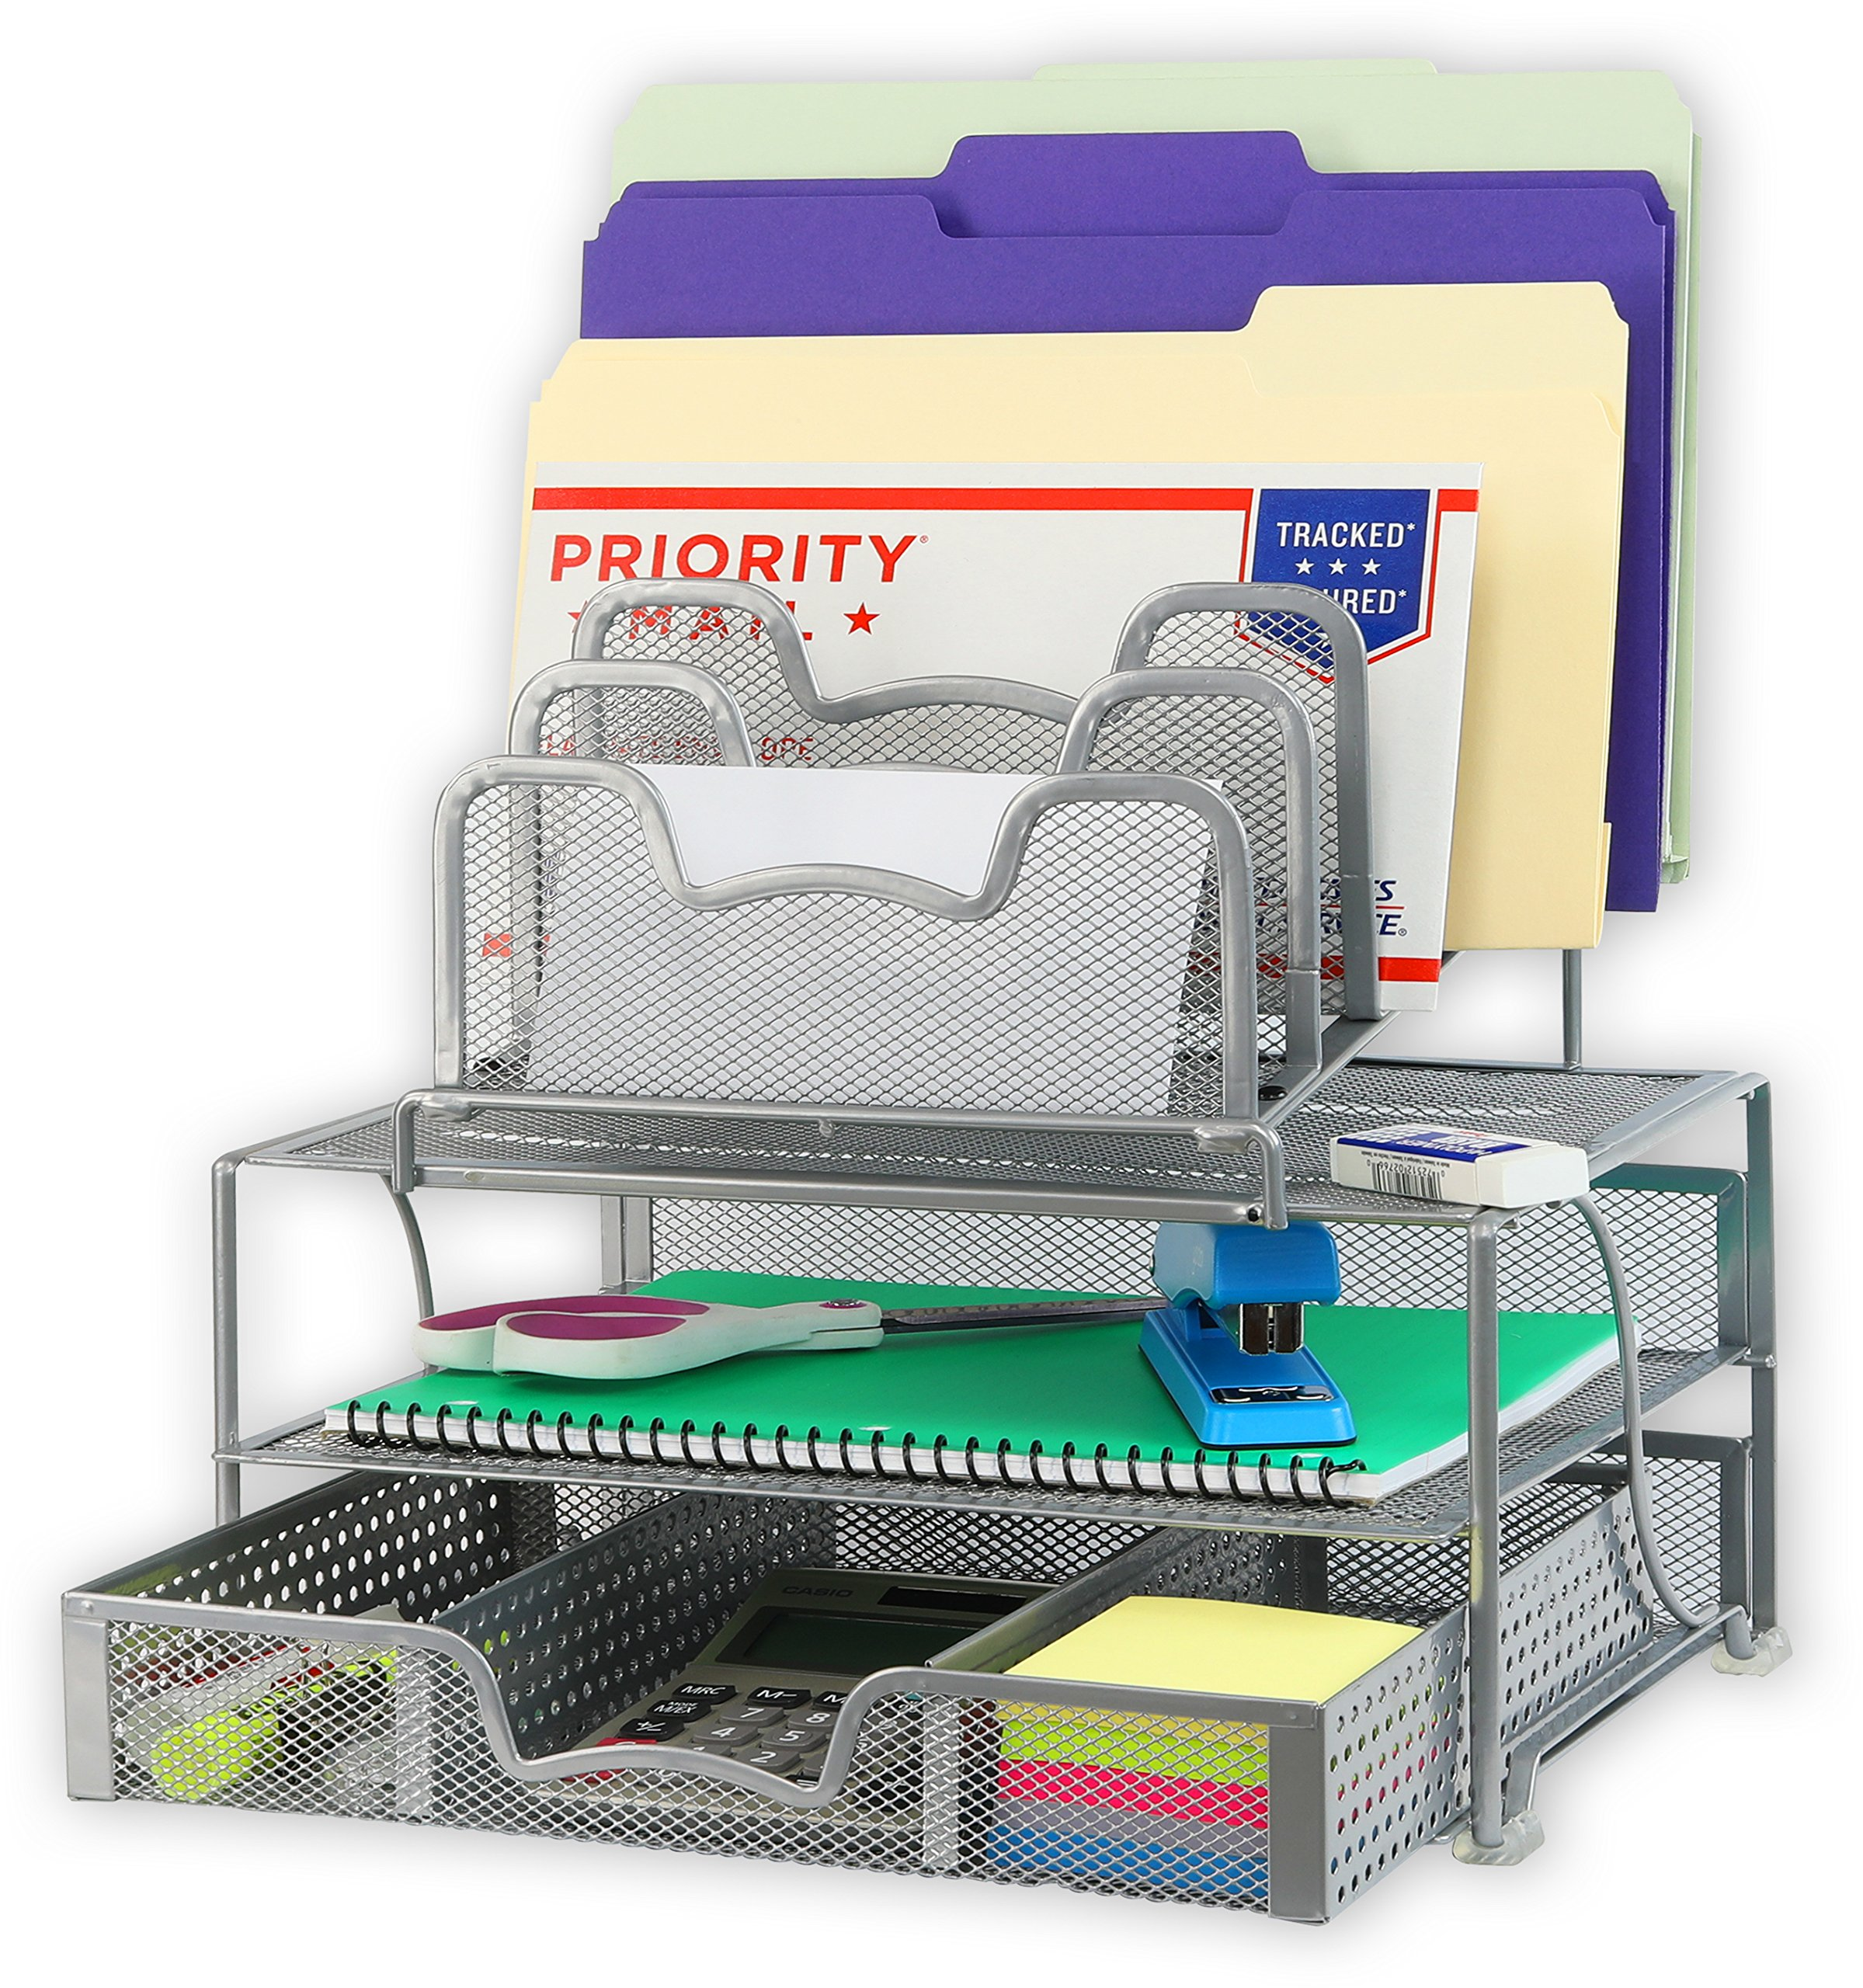 Desk Accessories & Workspace Organizers EasyPAG Mesh Desk